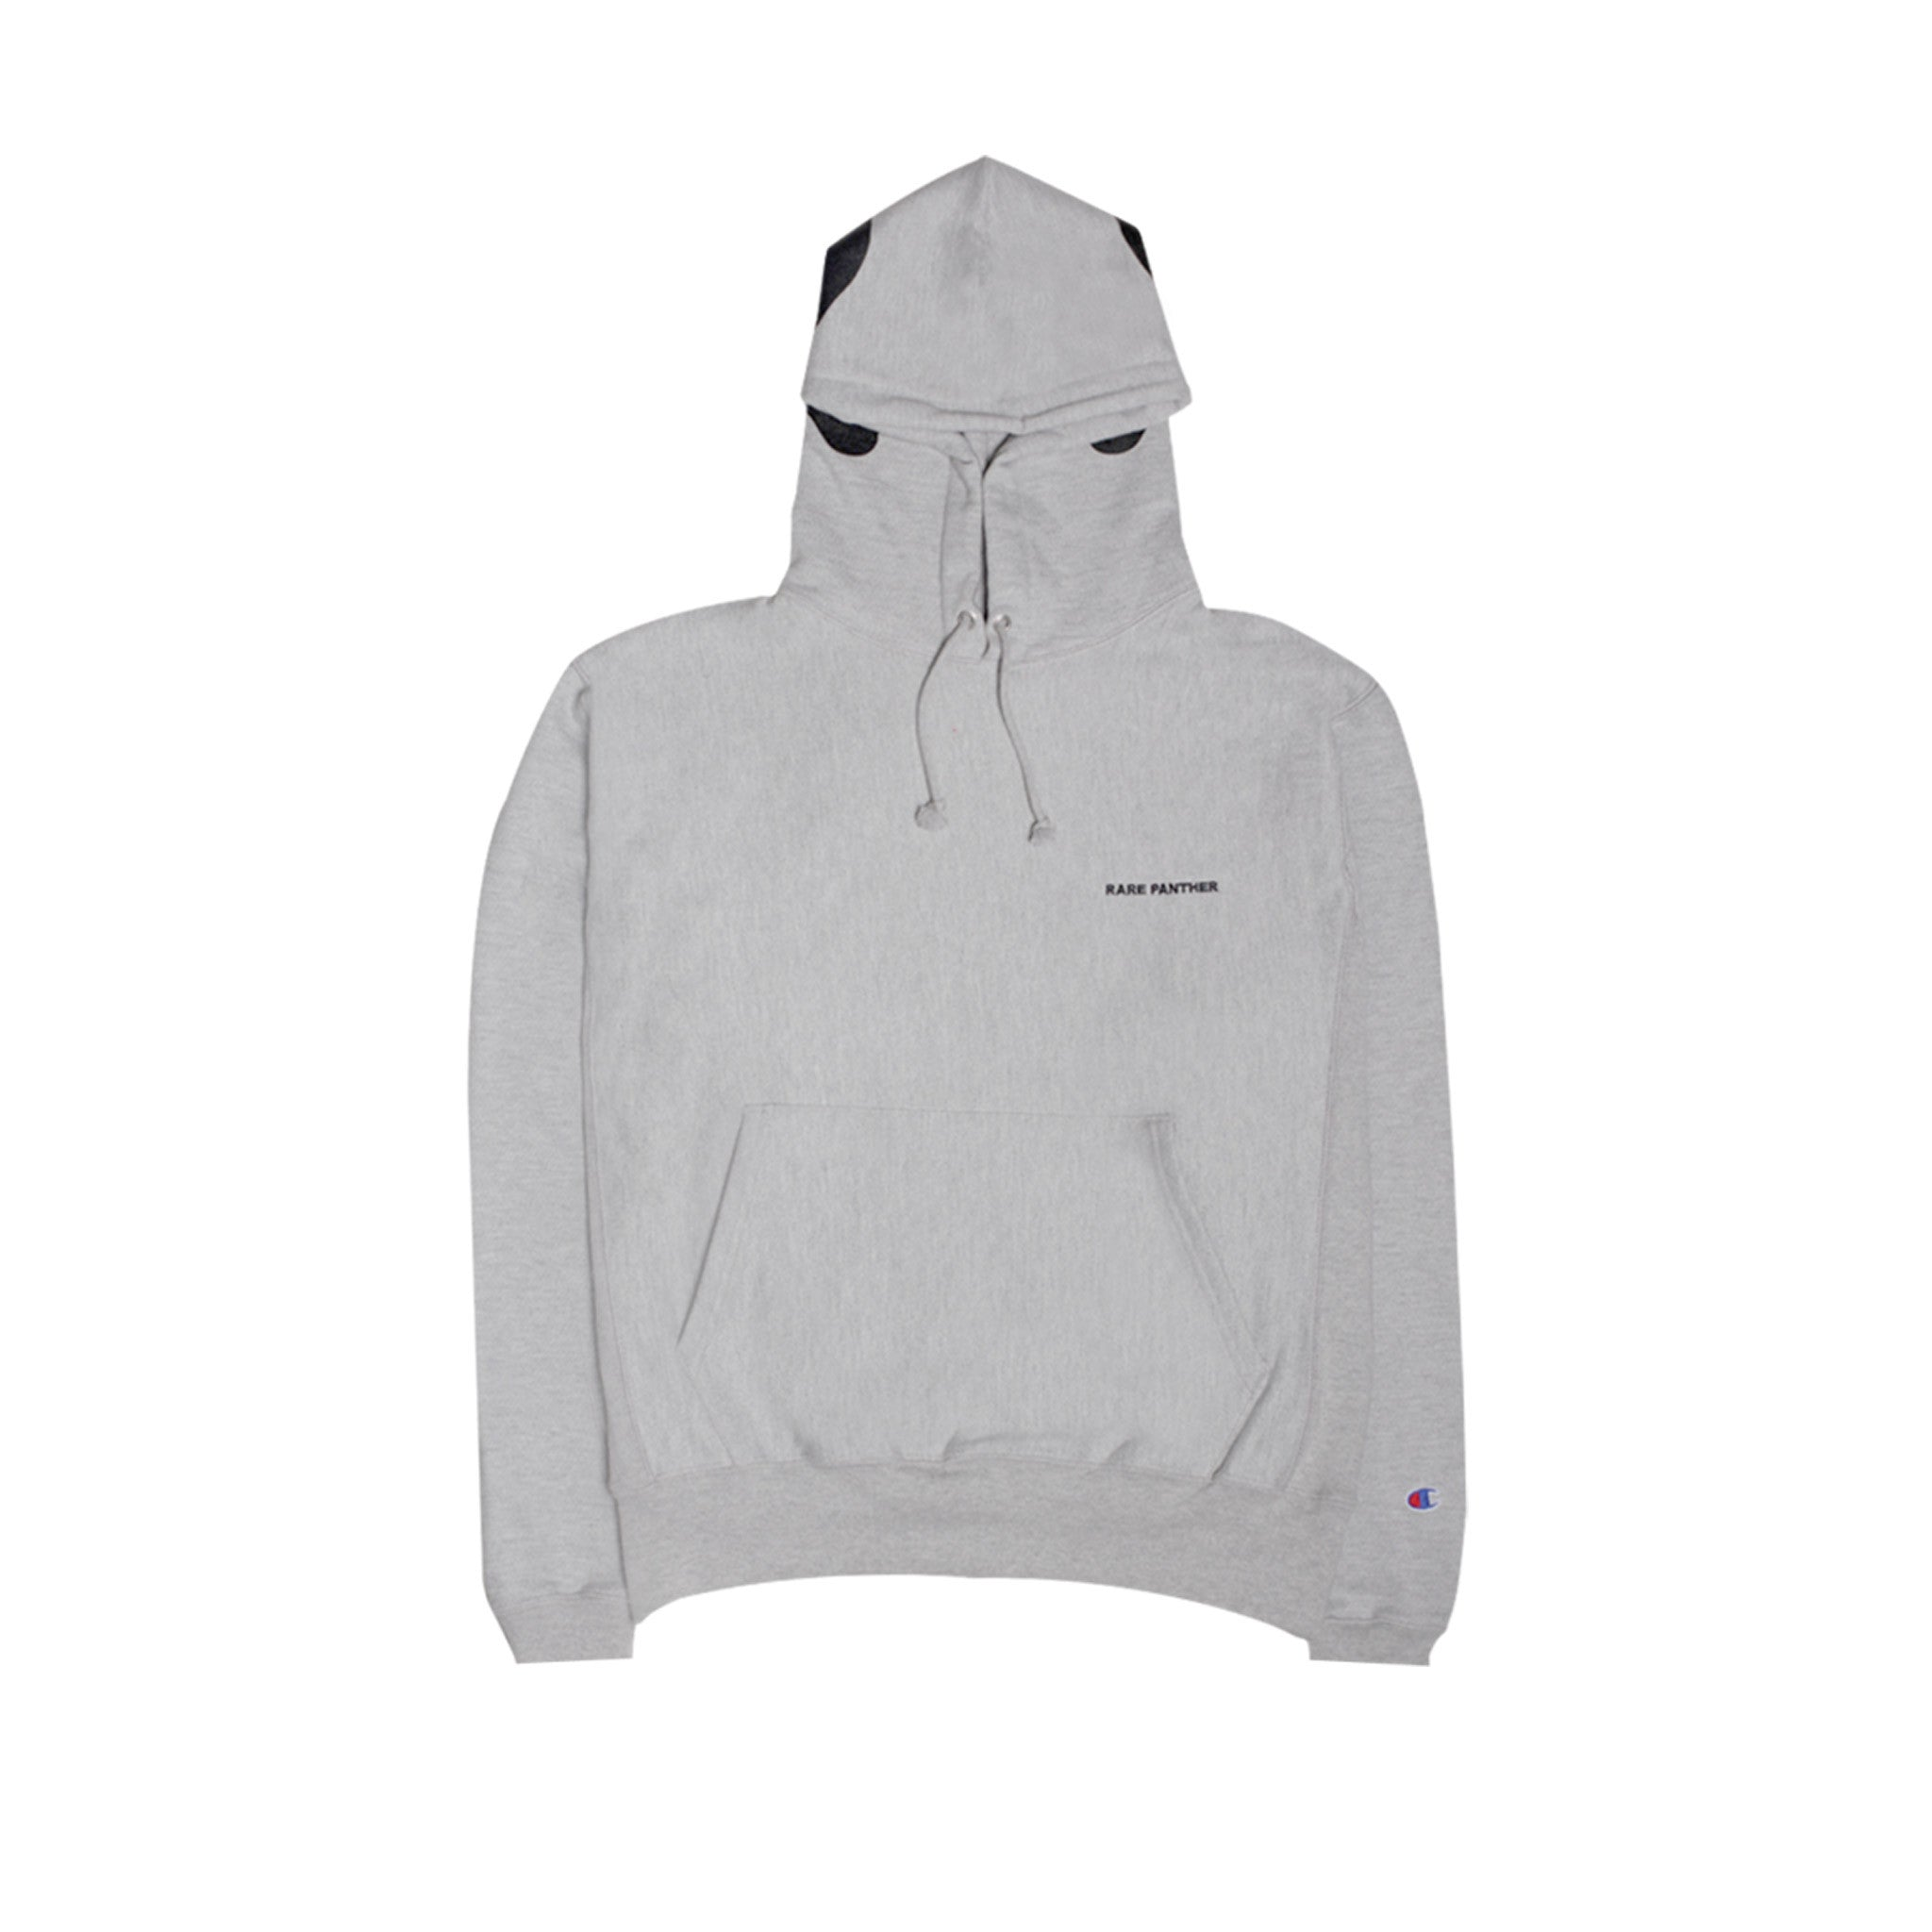 Rare Panther Hallow Bolt Eco Champion Hoody Grey Front